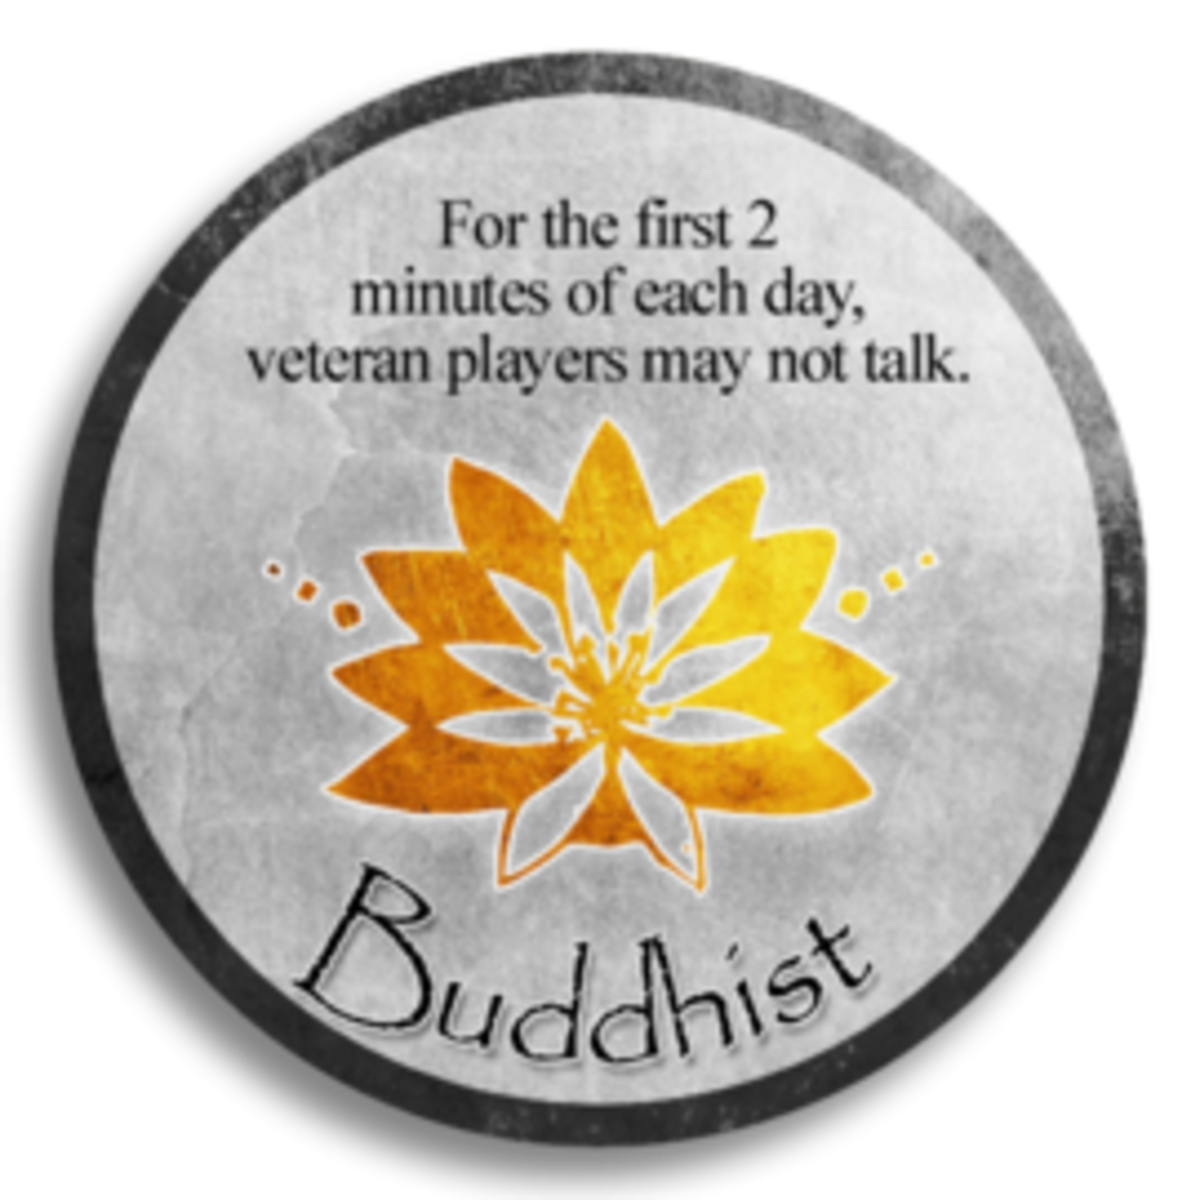 The Buddhist fabled